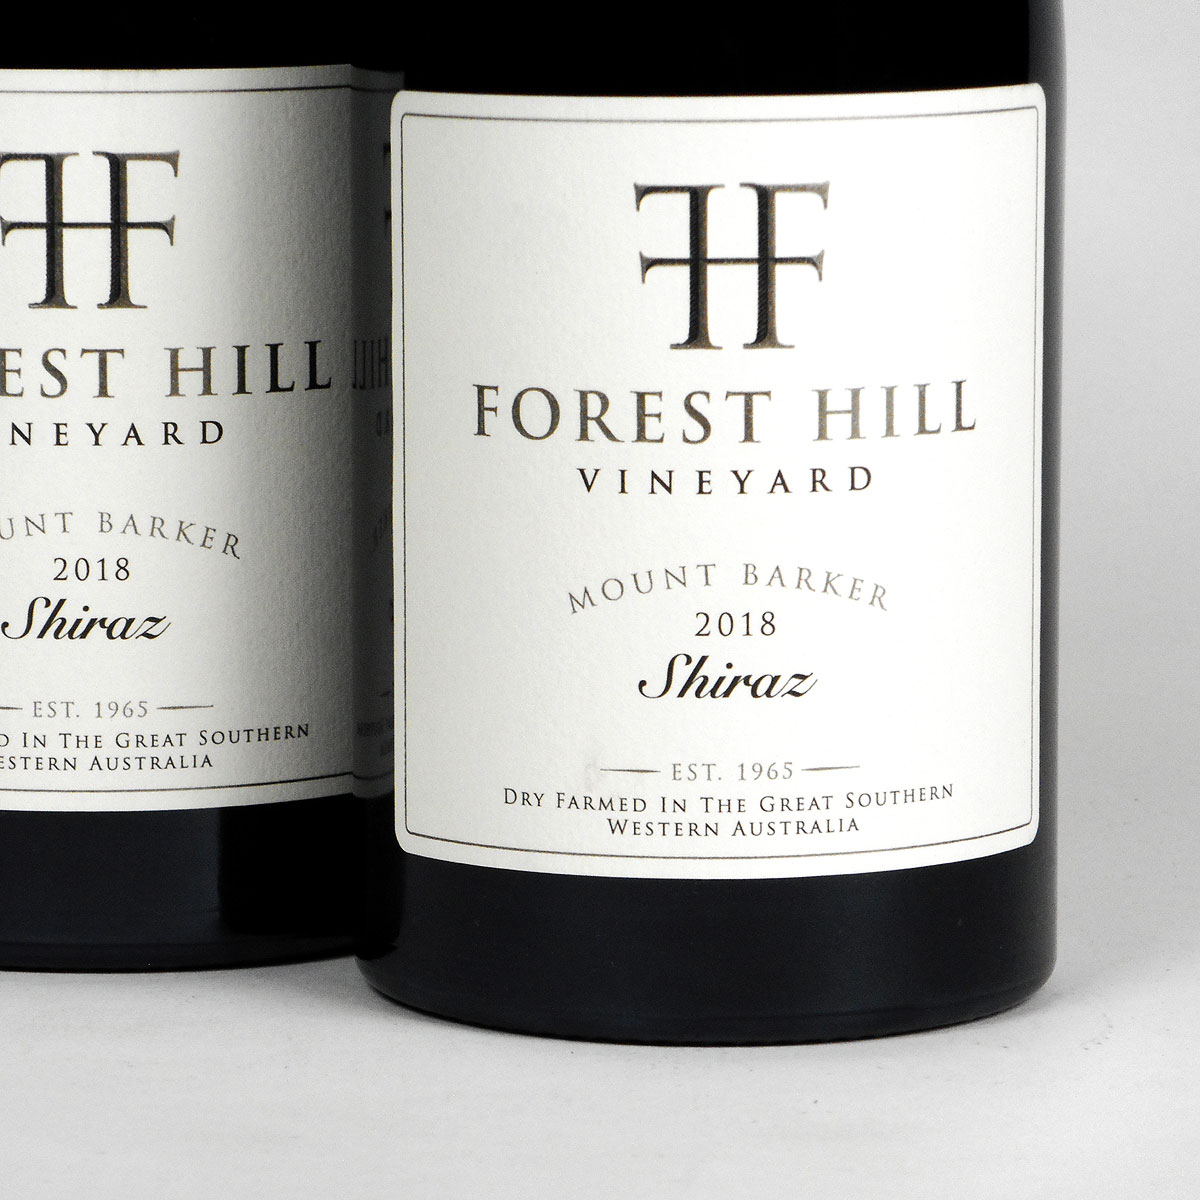 Forest Hill Vineyard: 'Estate' Shiraz 2018